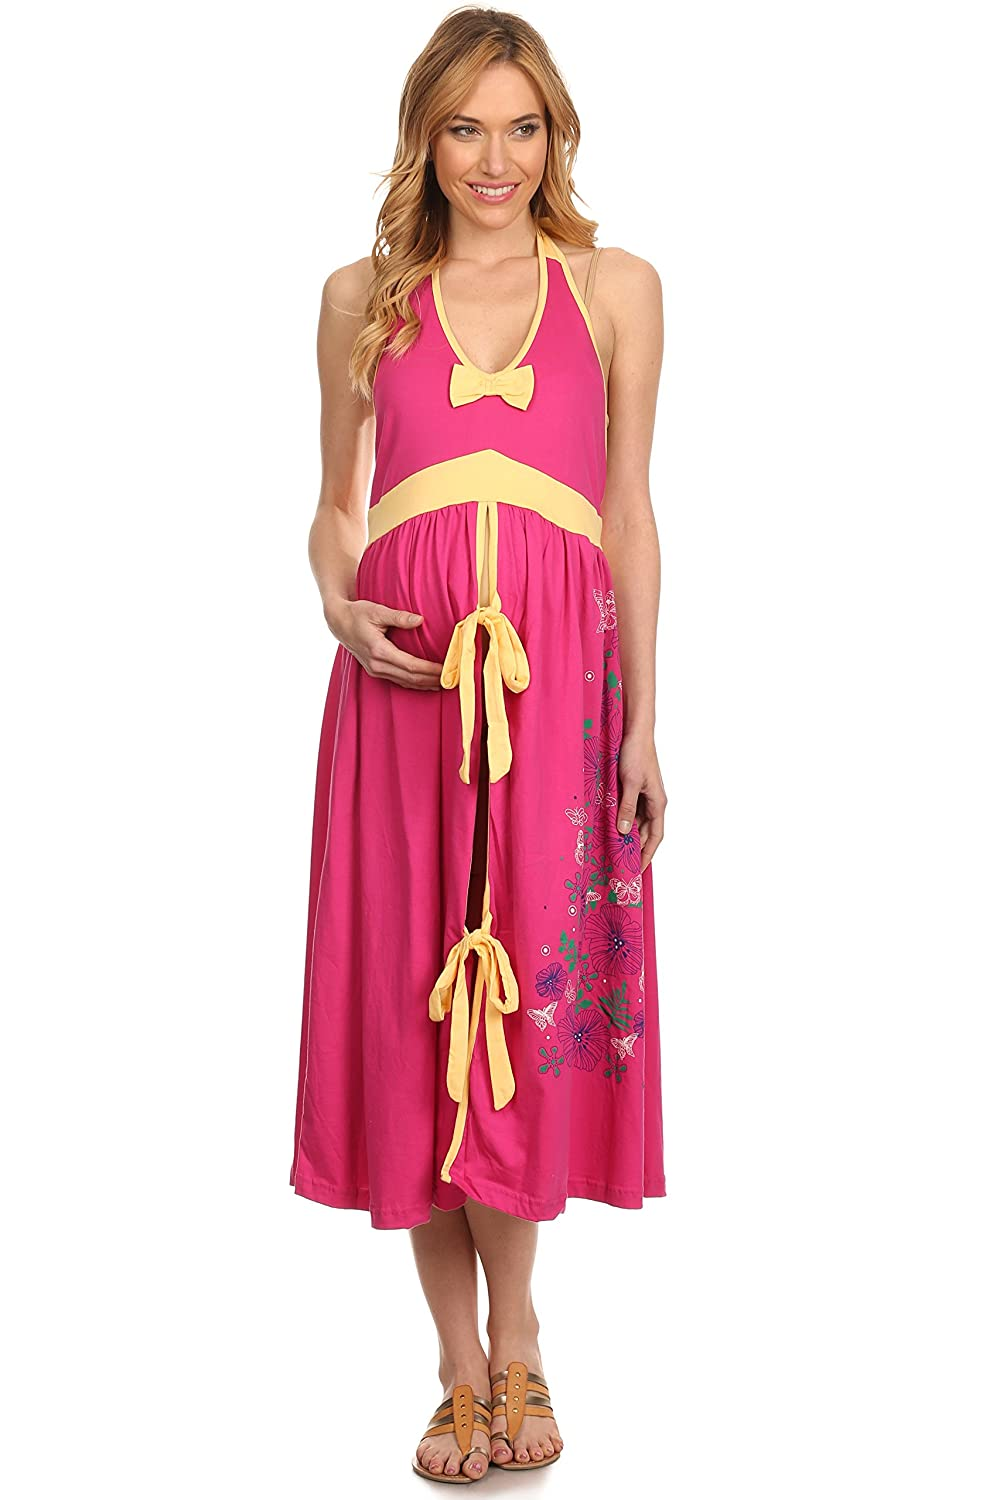 BellyMoms Soft Cotton Labor delivery Hospital birthing Gown ...